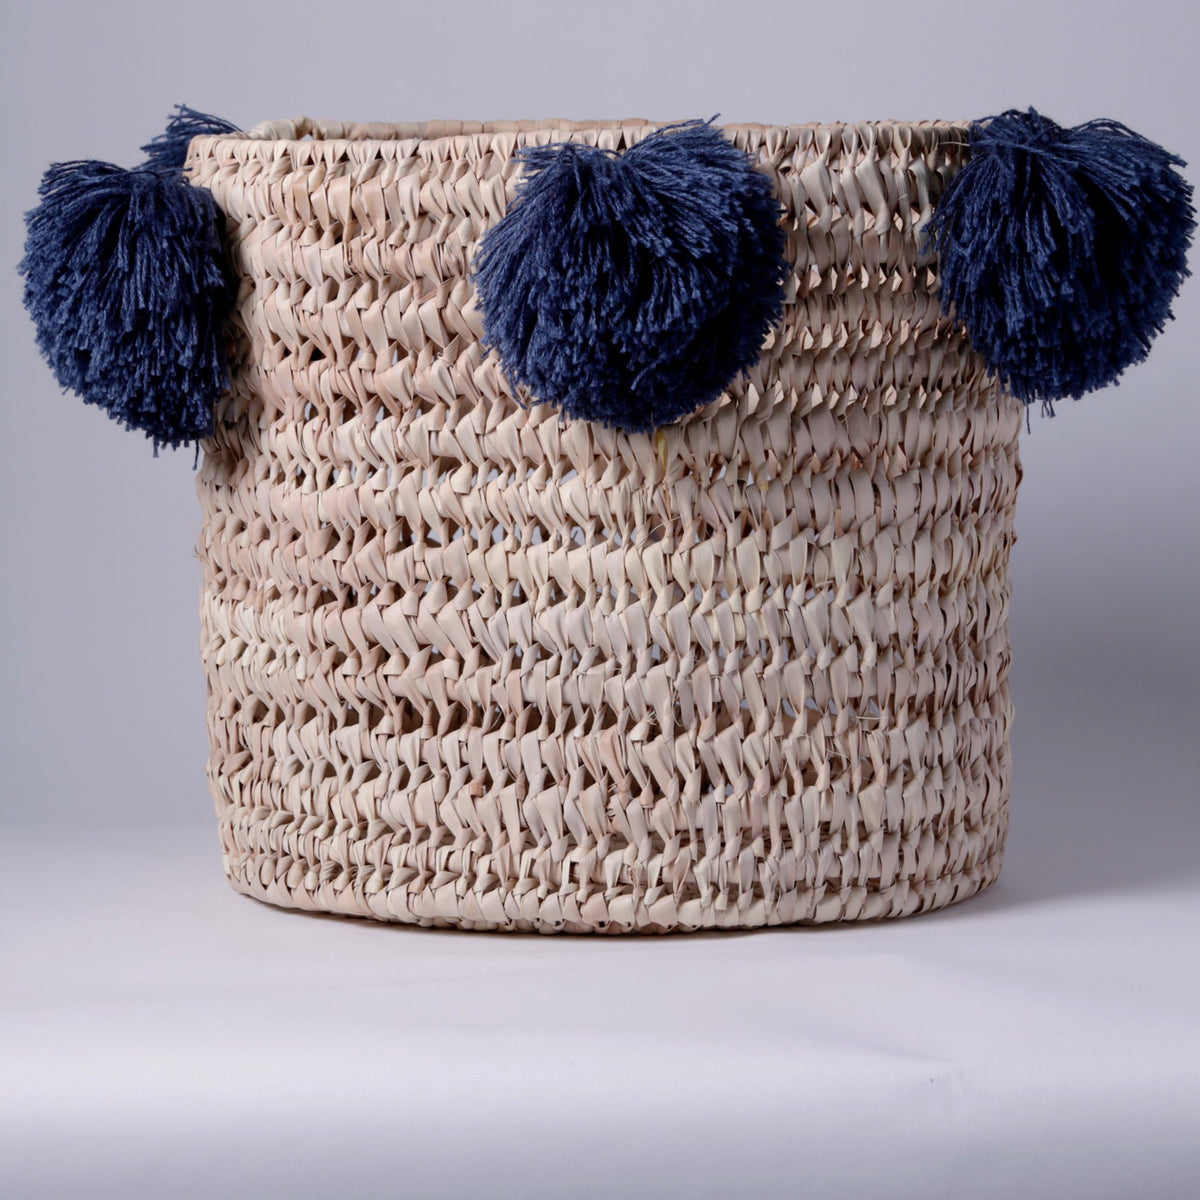 STRAW LAUNDRY BASKET, BLUE POM POM